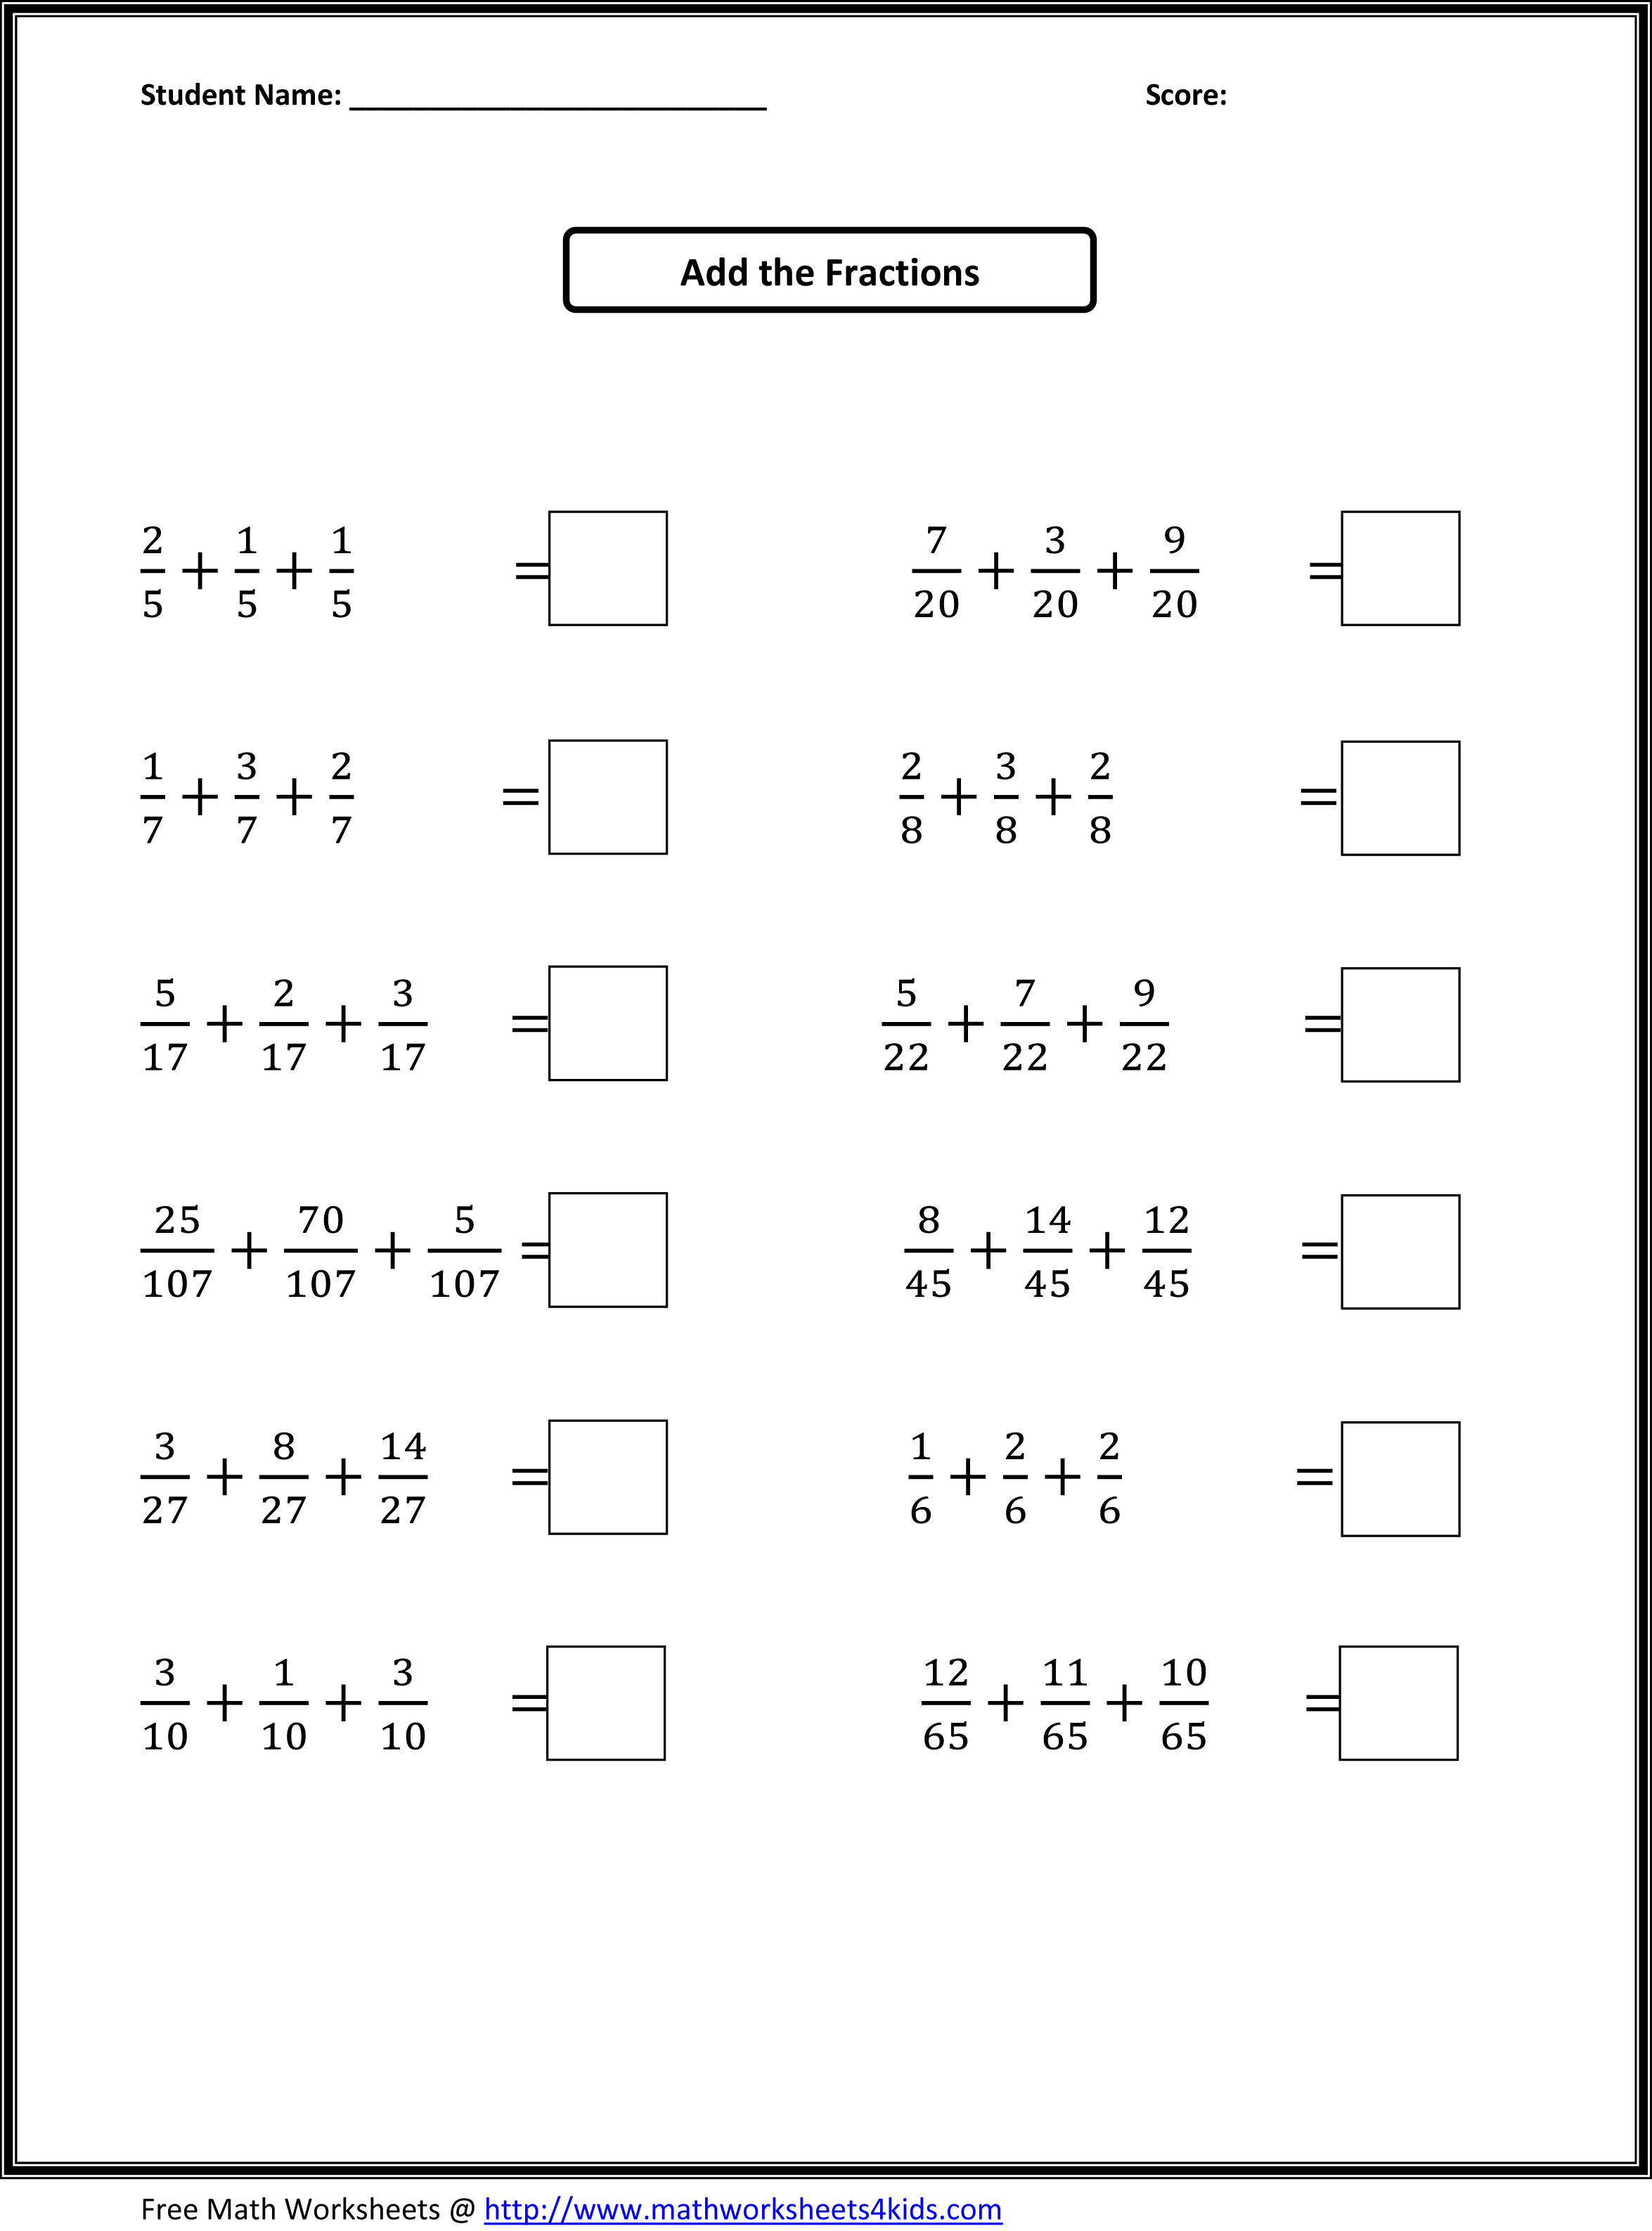 math worksheet : adding fractions worksheets 4th grade  khayav : Adding Subtracting And Multiplying Fractions Worksheets